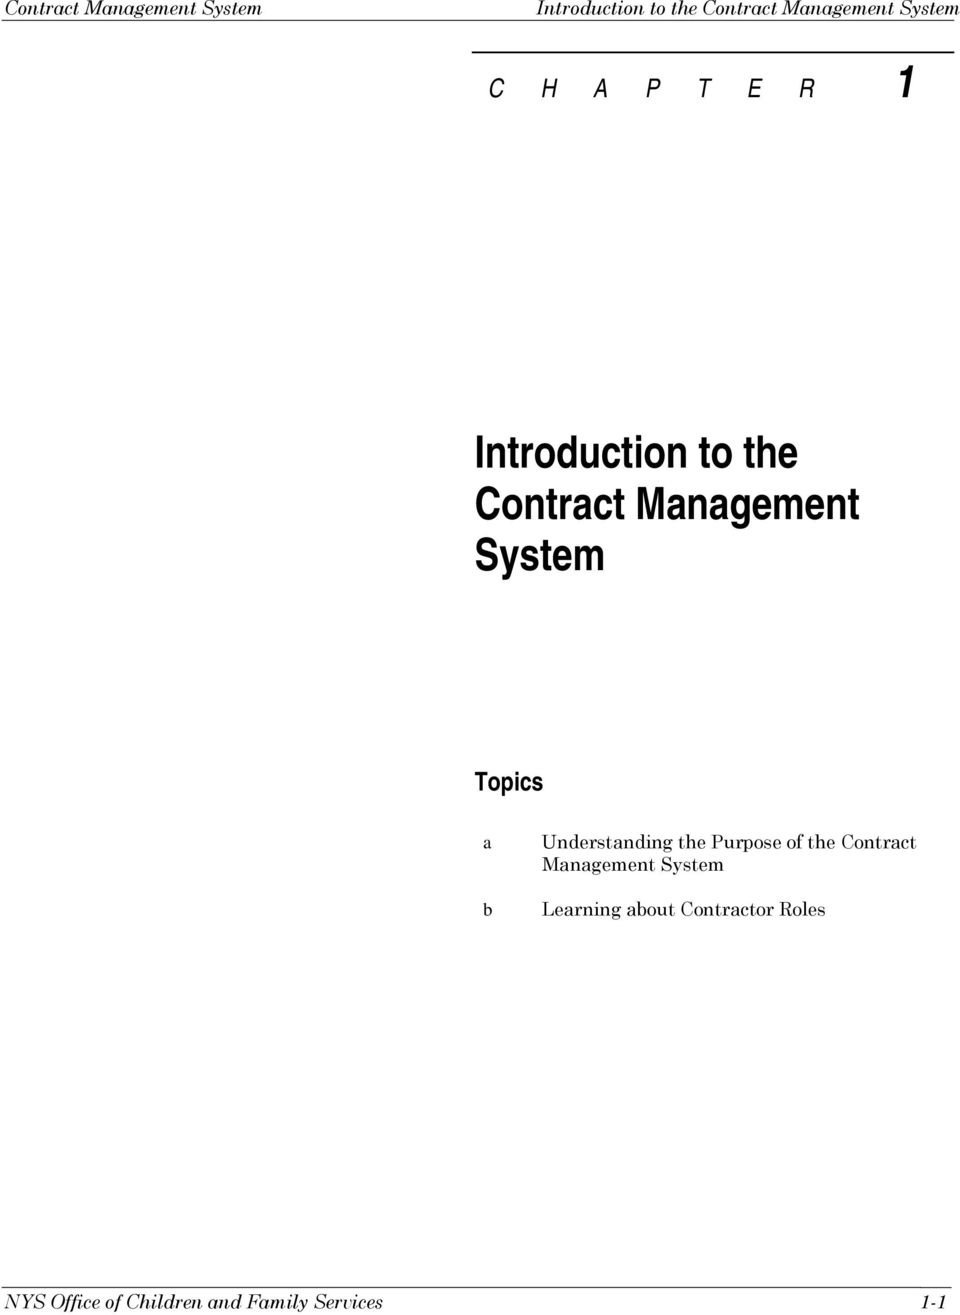 Understanding the Purpose of the Contract Management System